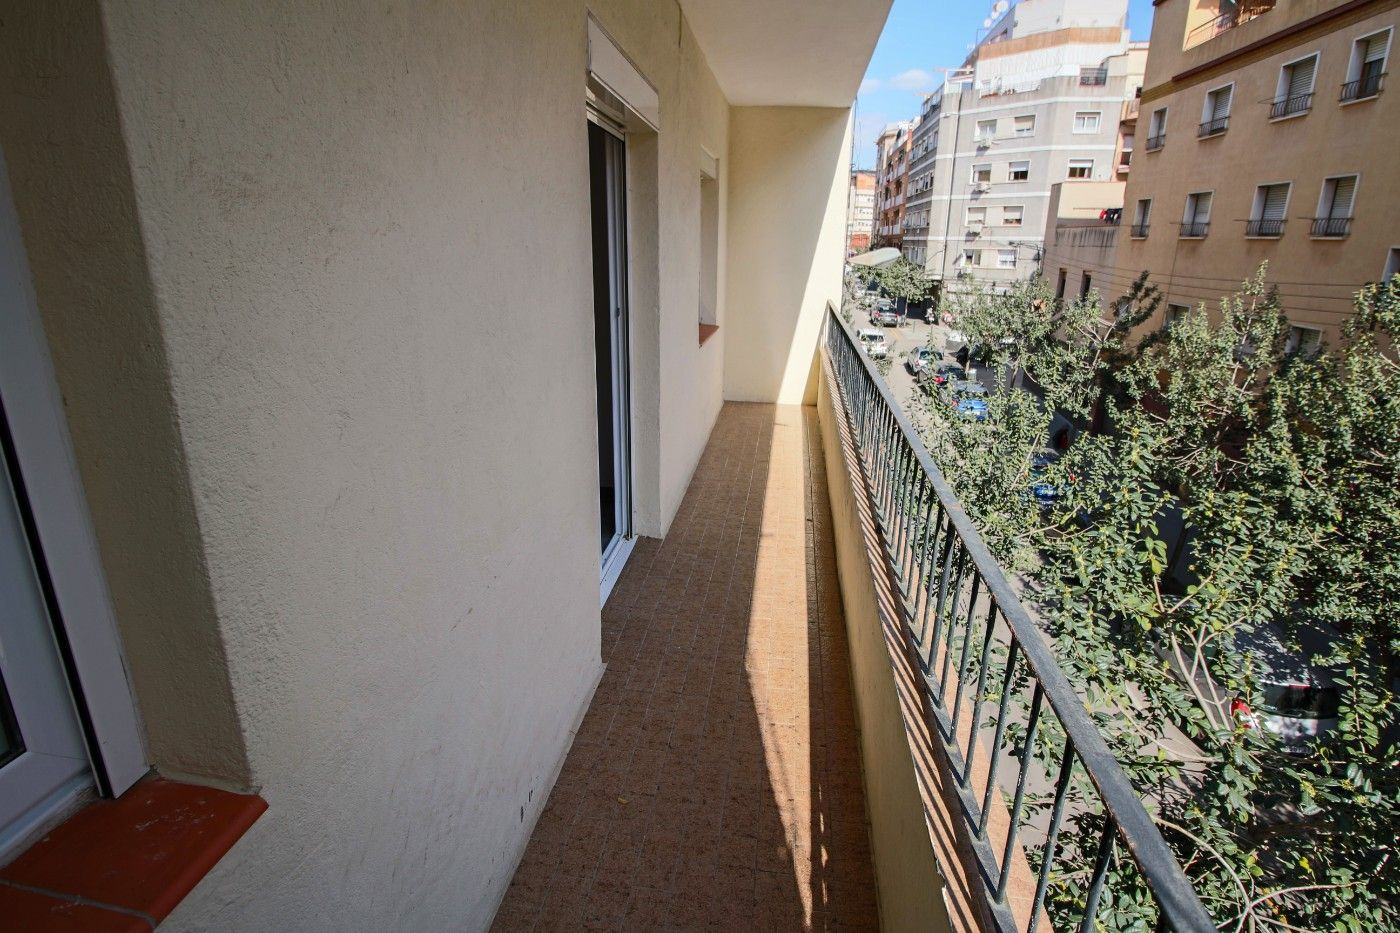 Rent Flat in Carrer marti i blasi, 79. 2 habitaciones con ascensor